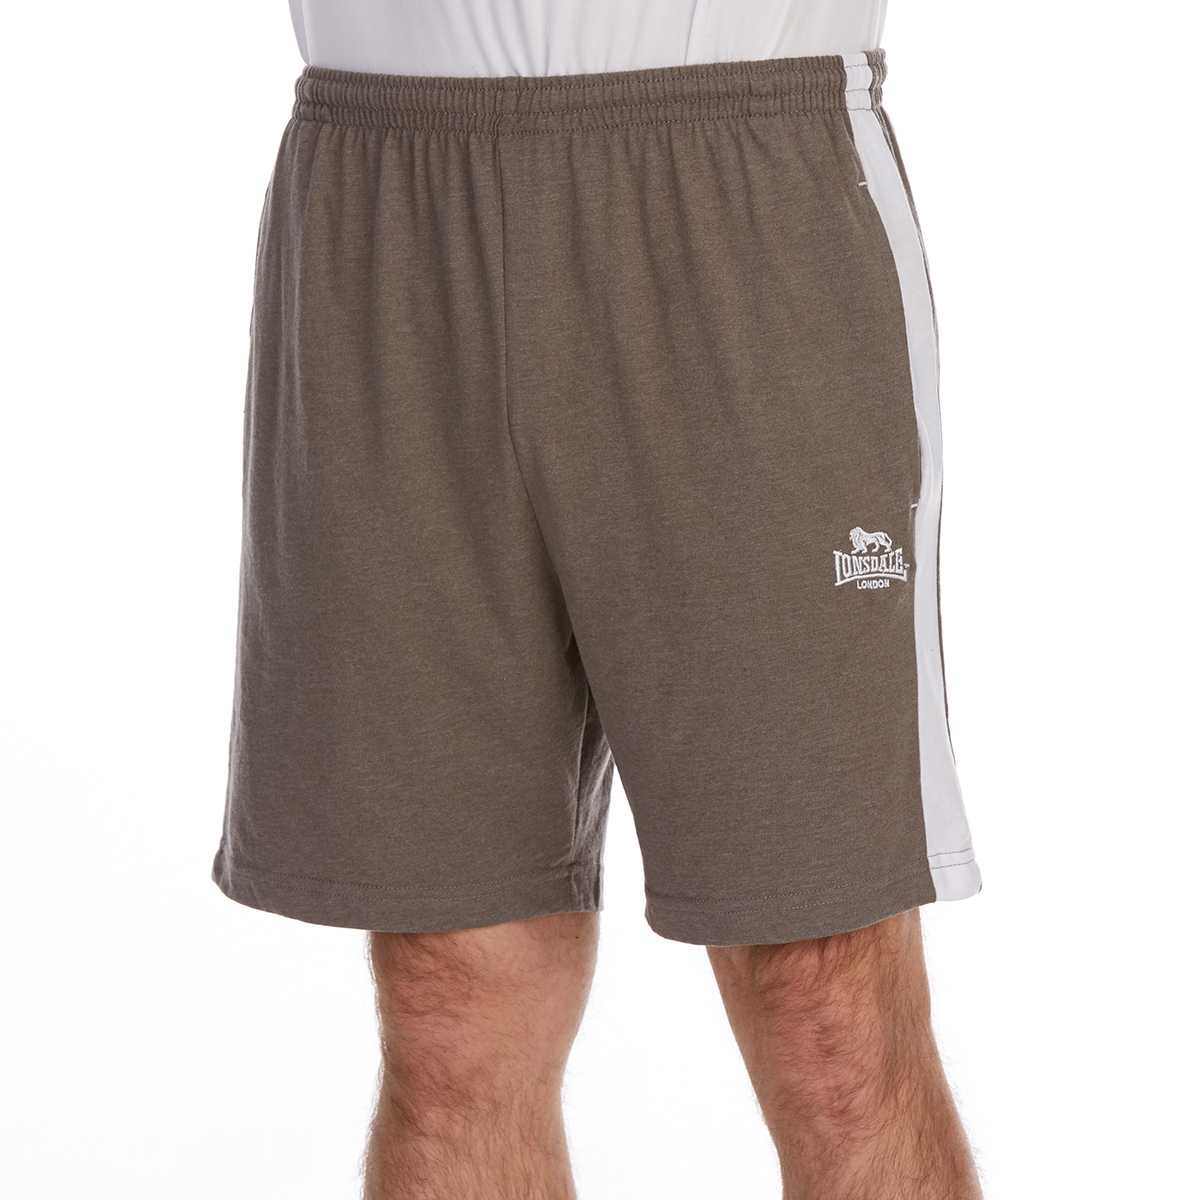 Lonsdale Men's Jersey Shorts - Black, M